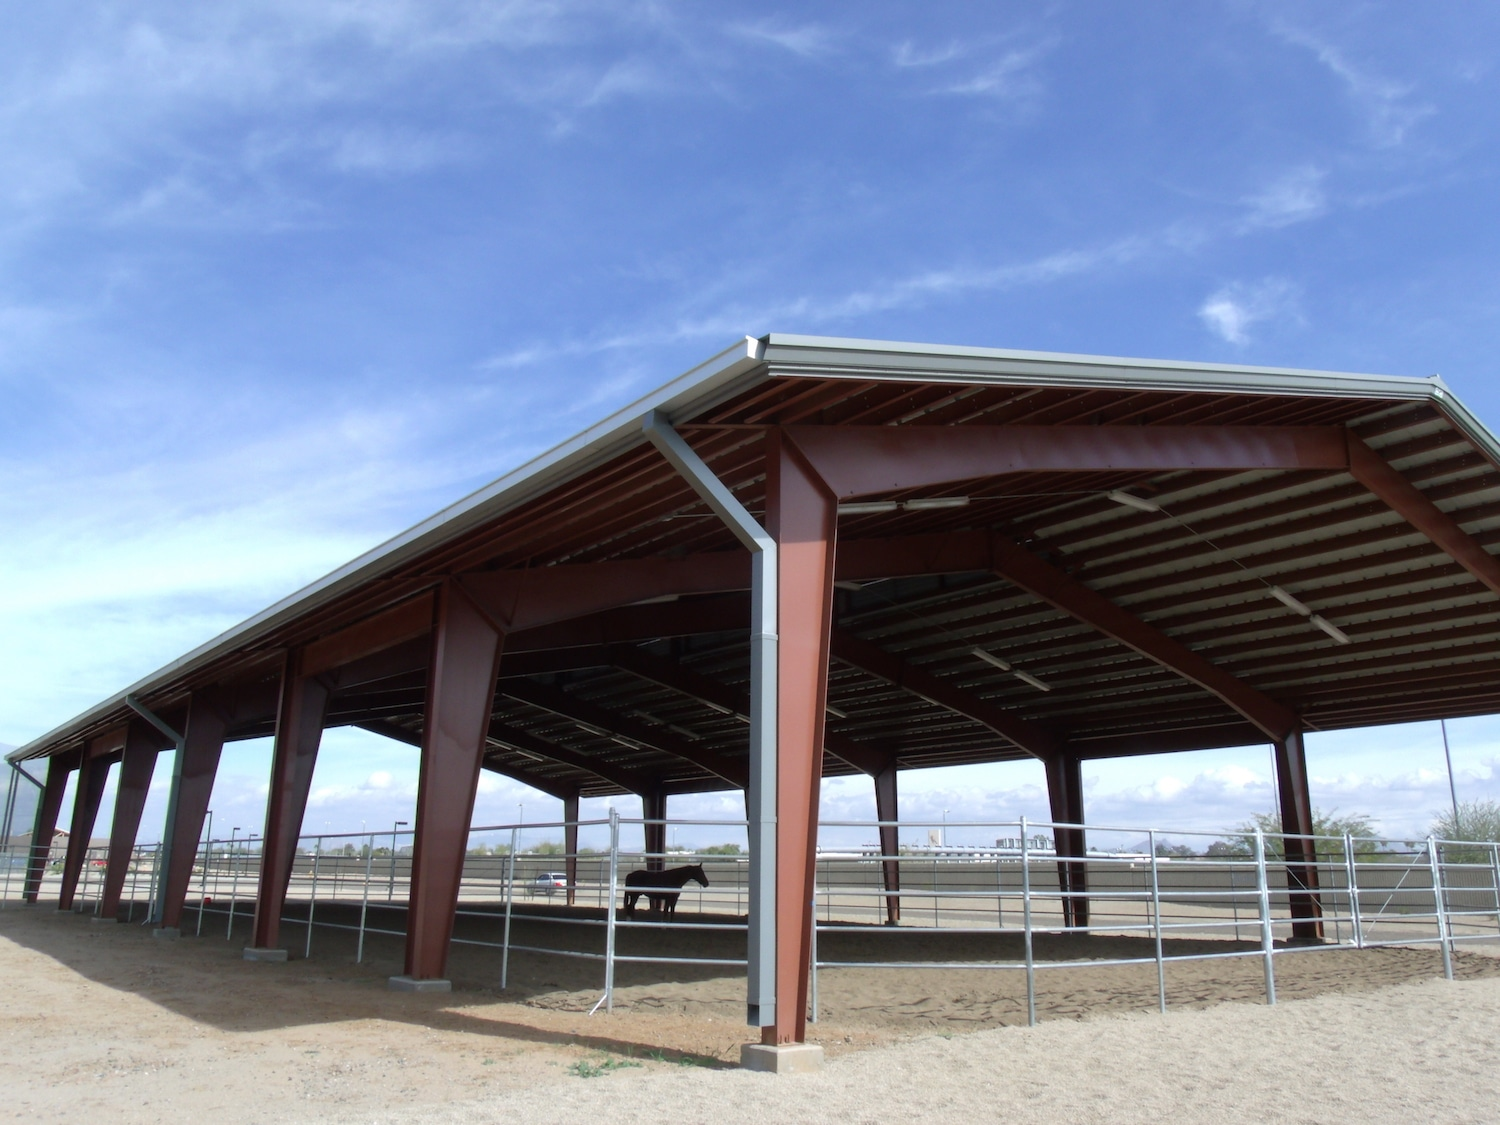 Arizona Agribusiness Equine Center